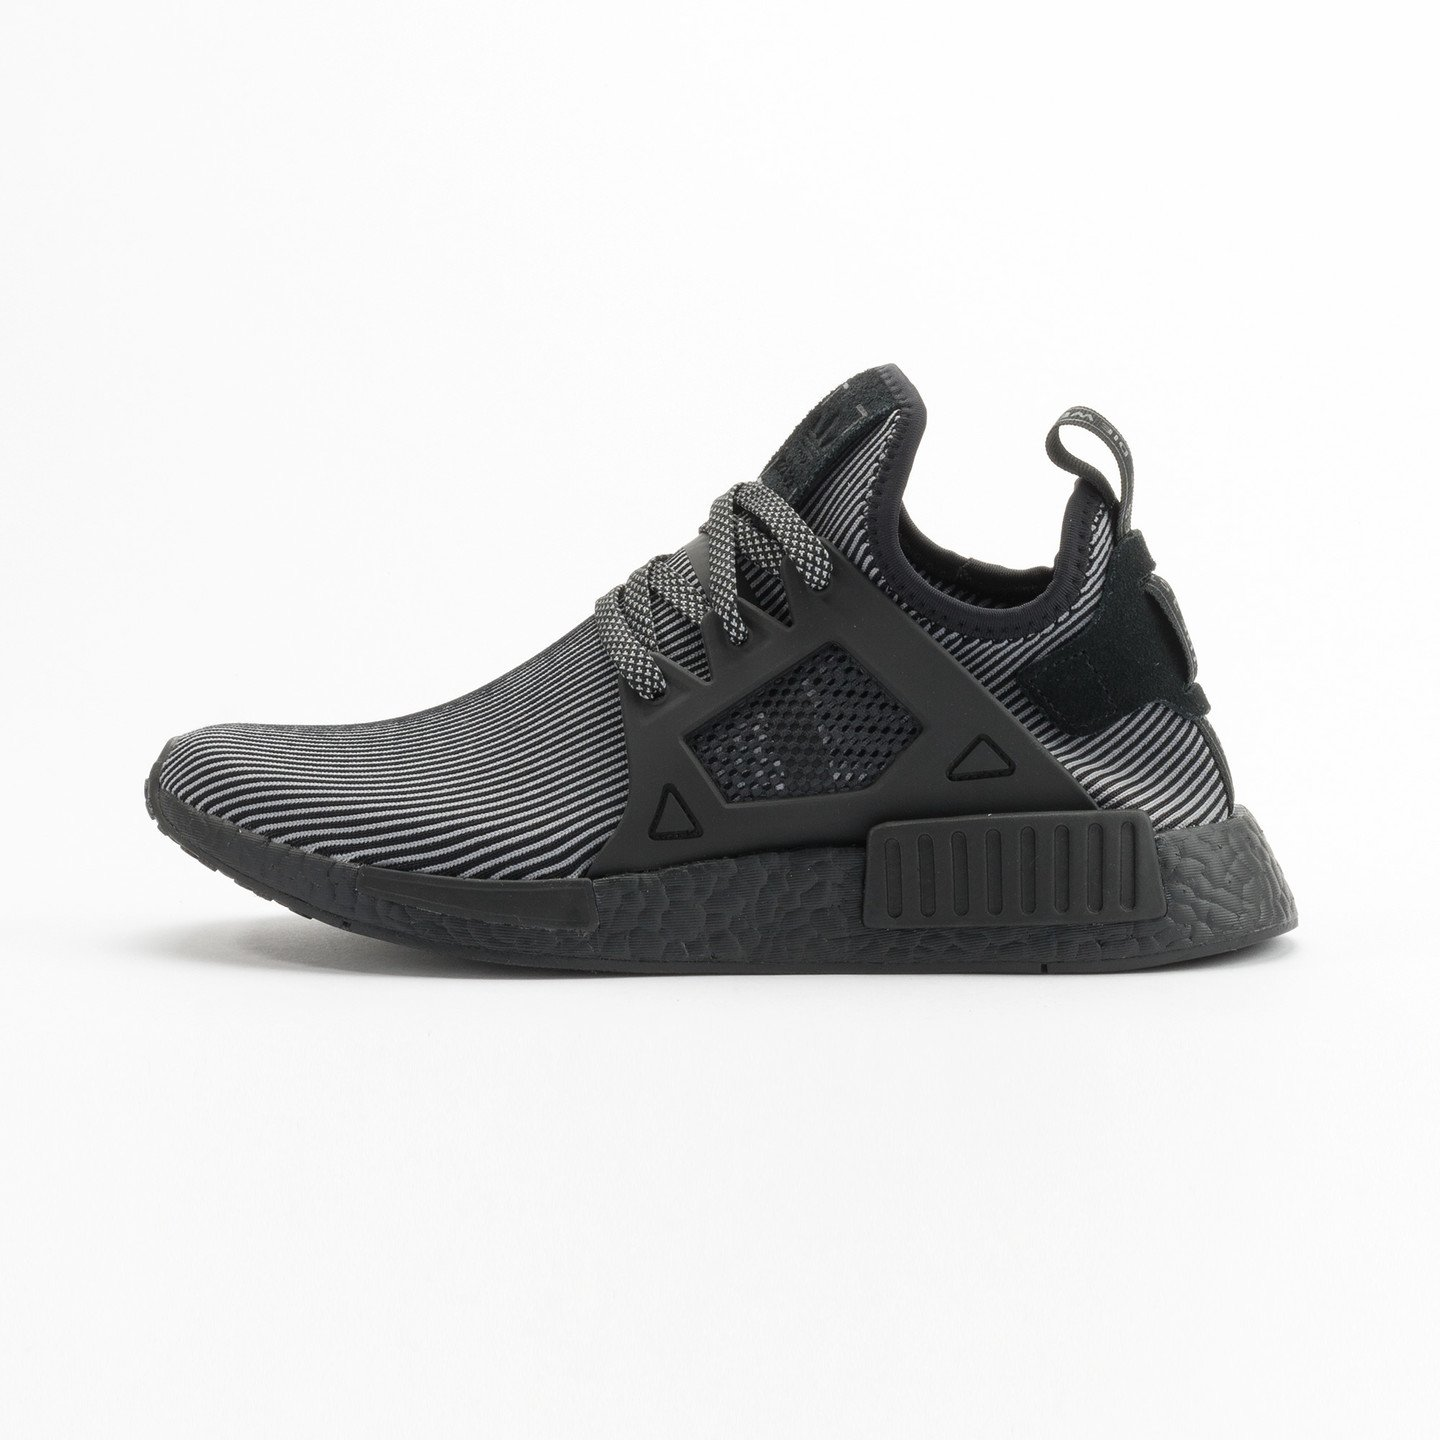 Adidas NMD XR1 Primeknit Core Black / Core Black / Running White S32211-45.33